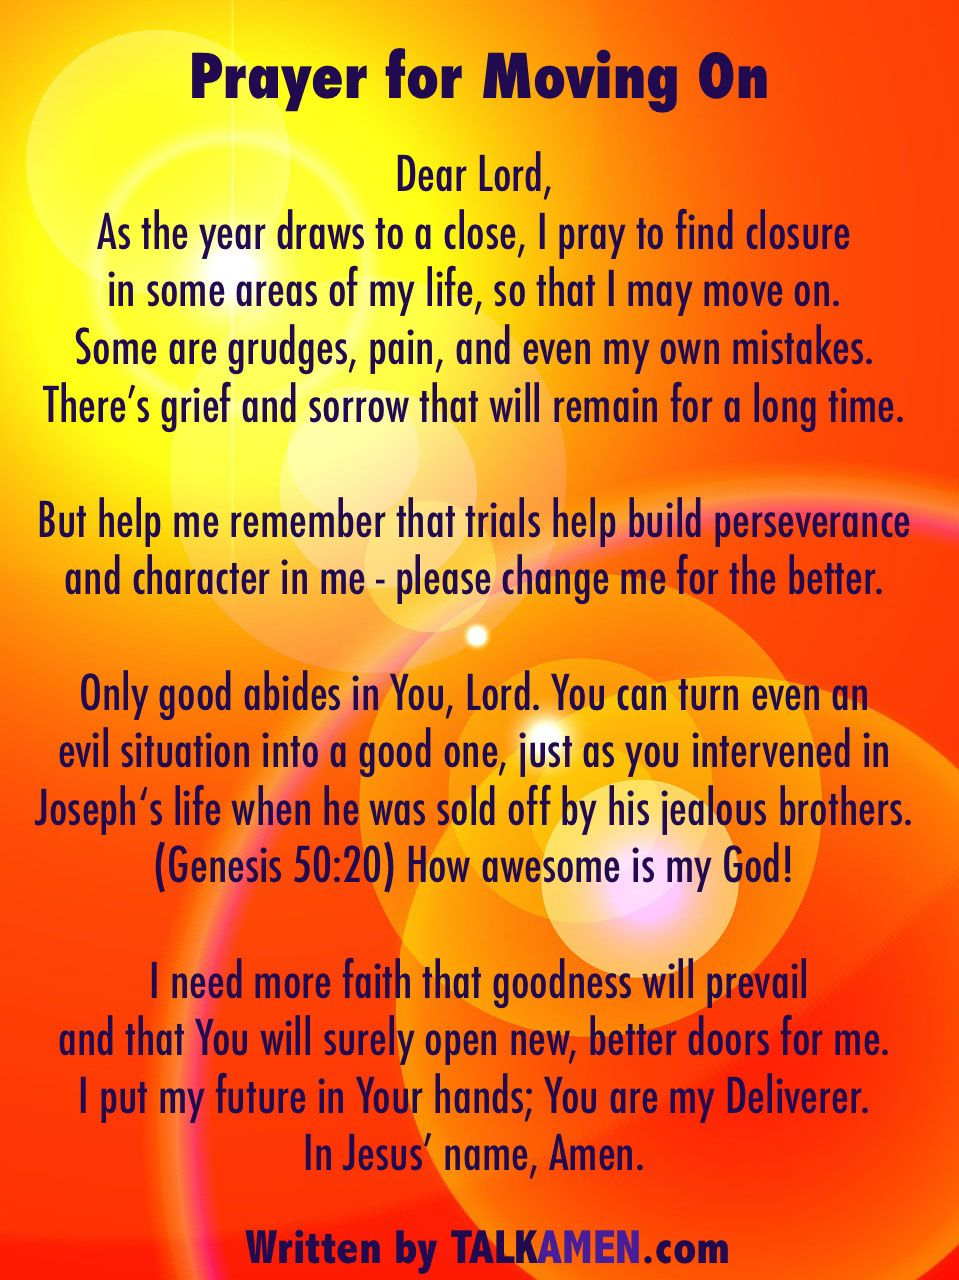 Prayer For Moving On Words Of Wisdom Pinterest Lord And Wisdom